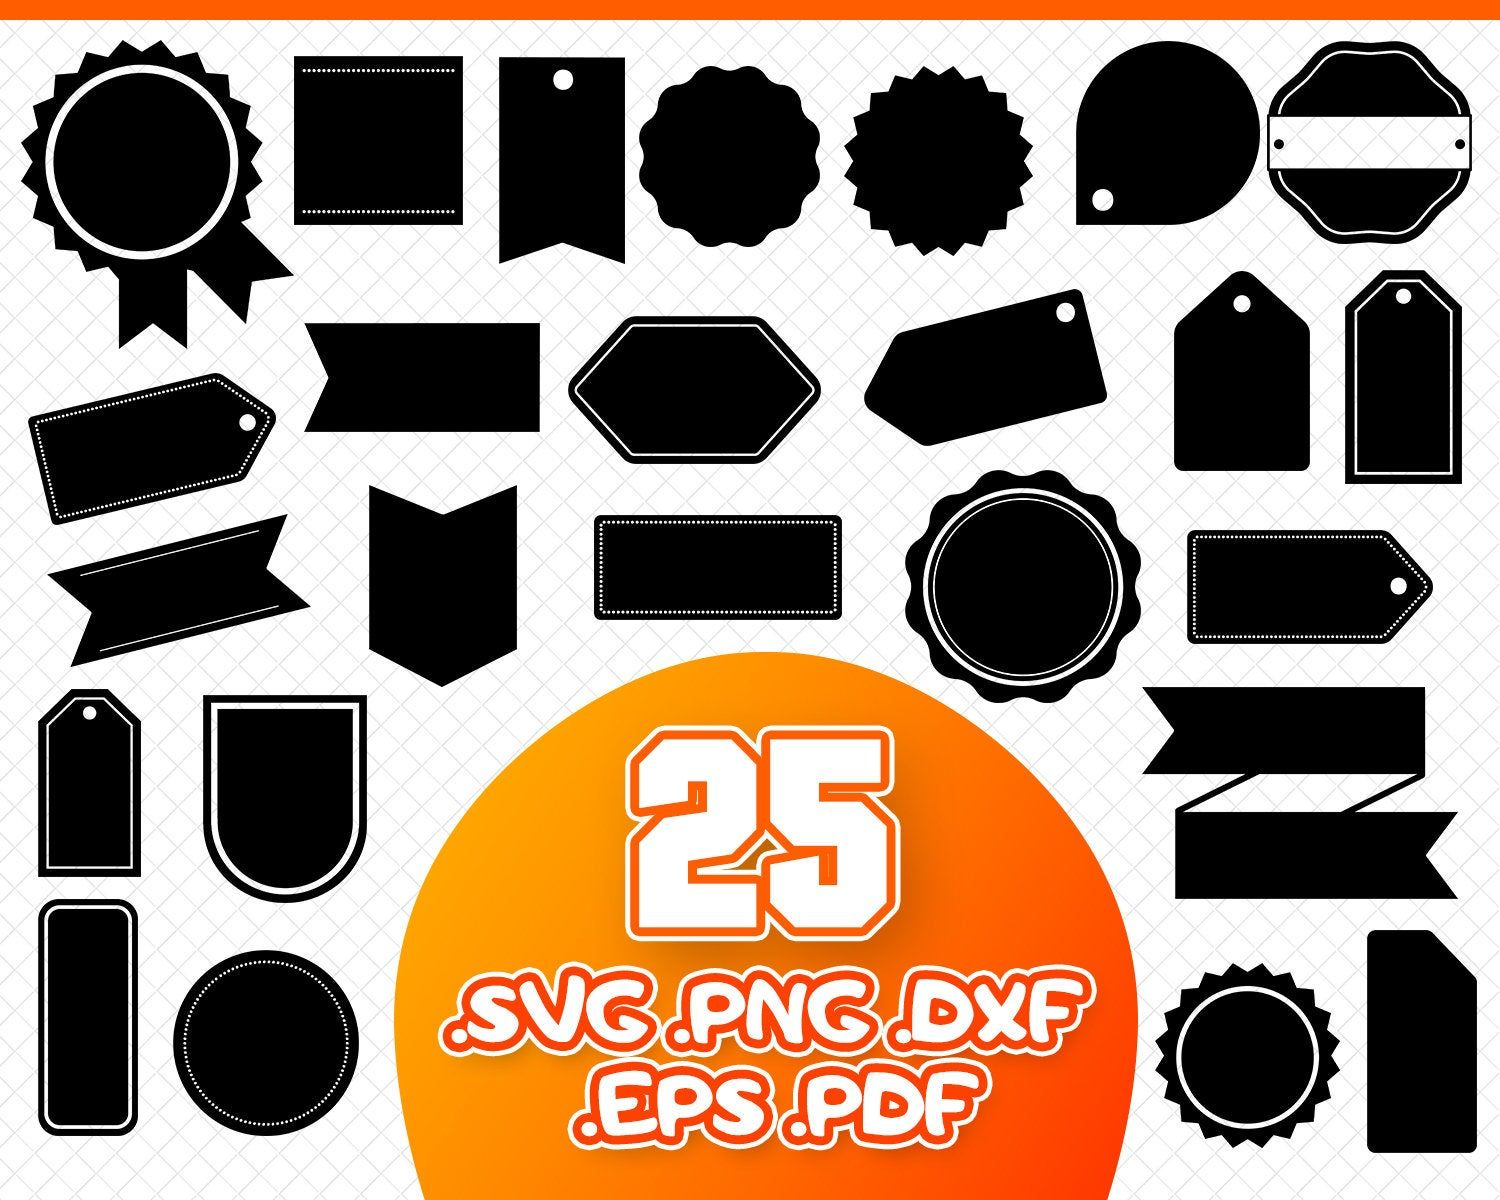 Tags Svg Label Svg Name Tag Svg Dog Tags Svg Labels Svg Tags Cricut Tags Clipart Tags Silhouette Decorative Tags Svg Monog Dog Tags Clip Art Name Tags